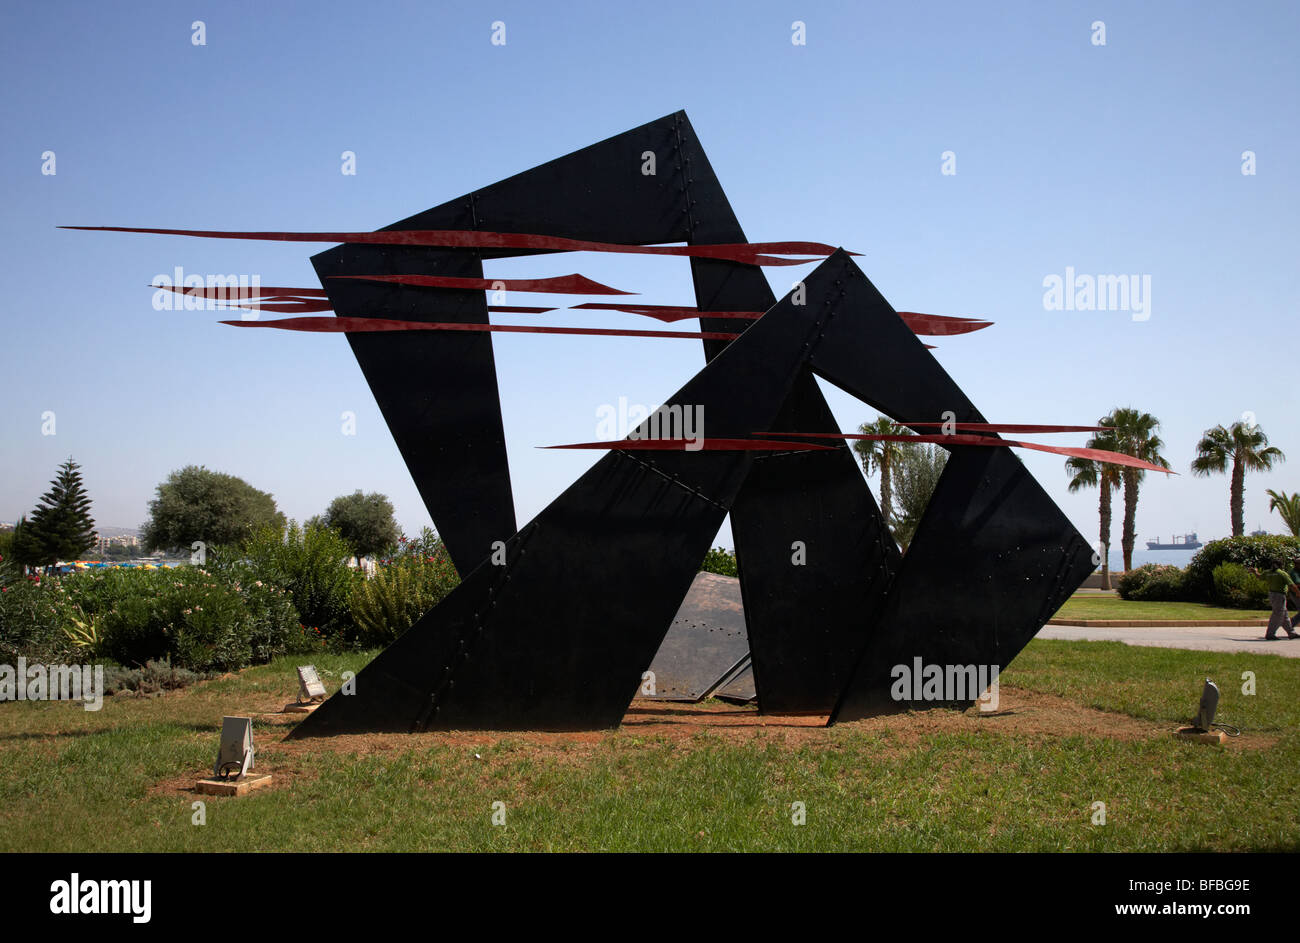 Limassol sculpture park in twin cities park on reclaimed land lemesos republic of cyprus europe - Stock Image